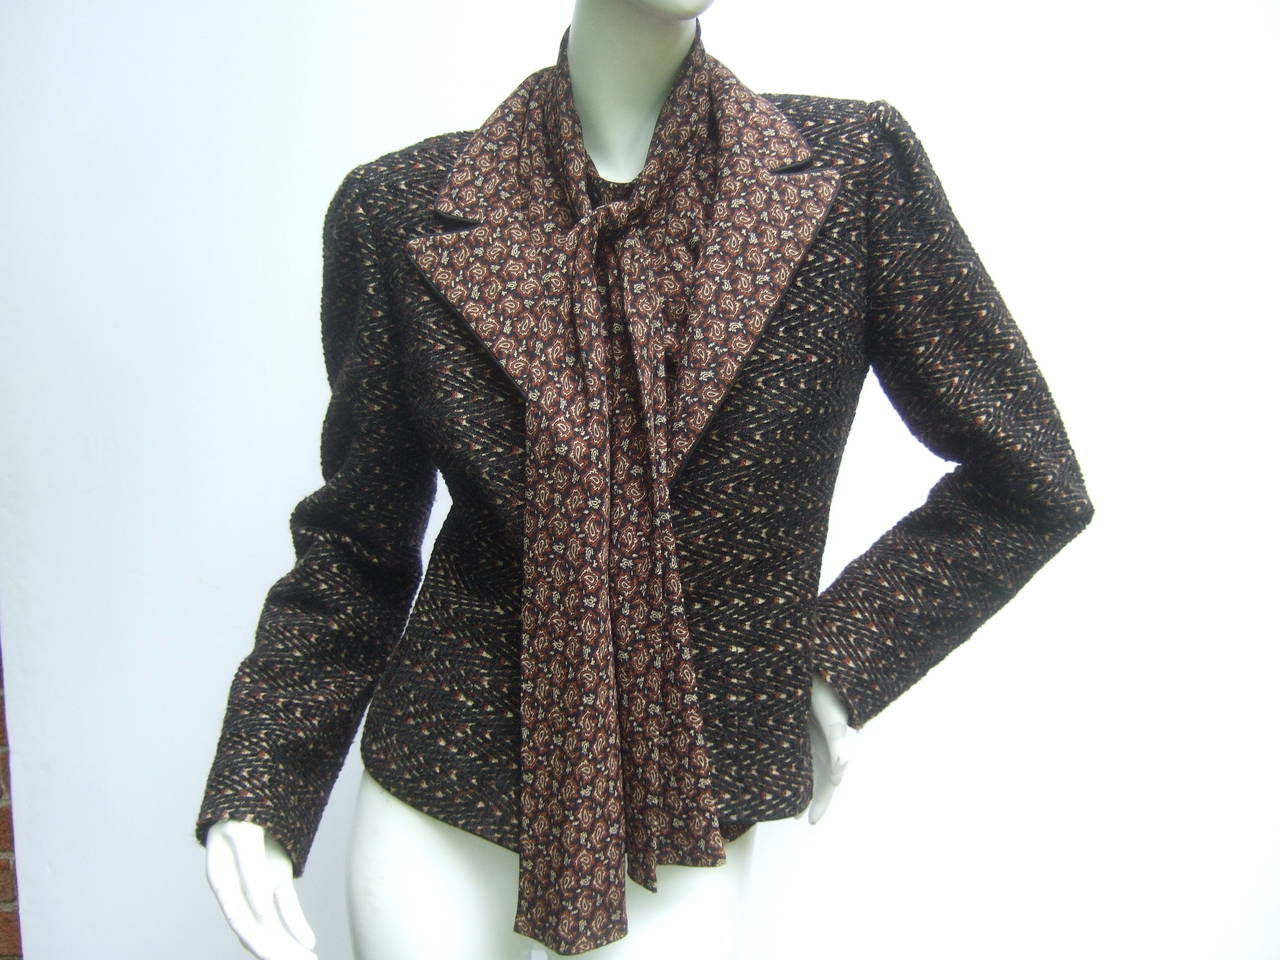 Lanvin Couture Paris Wool Jacket & Paisley Blouse Ensemble c 1980s 3